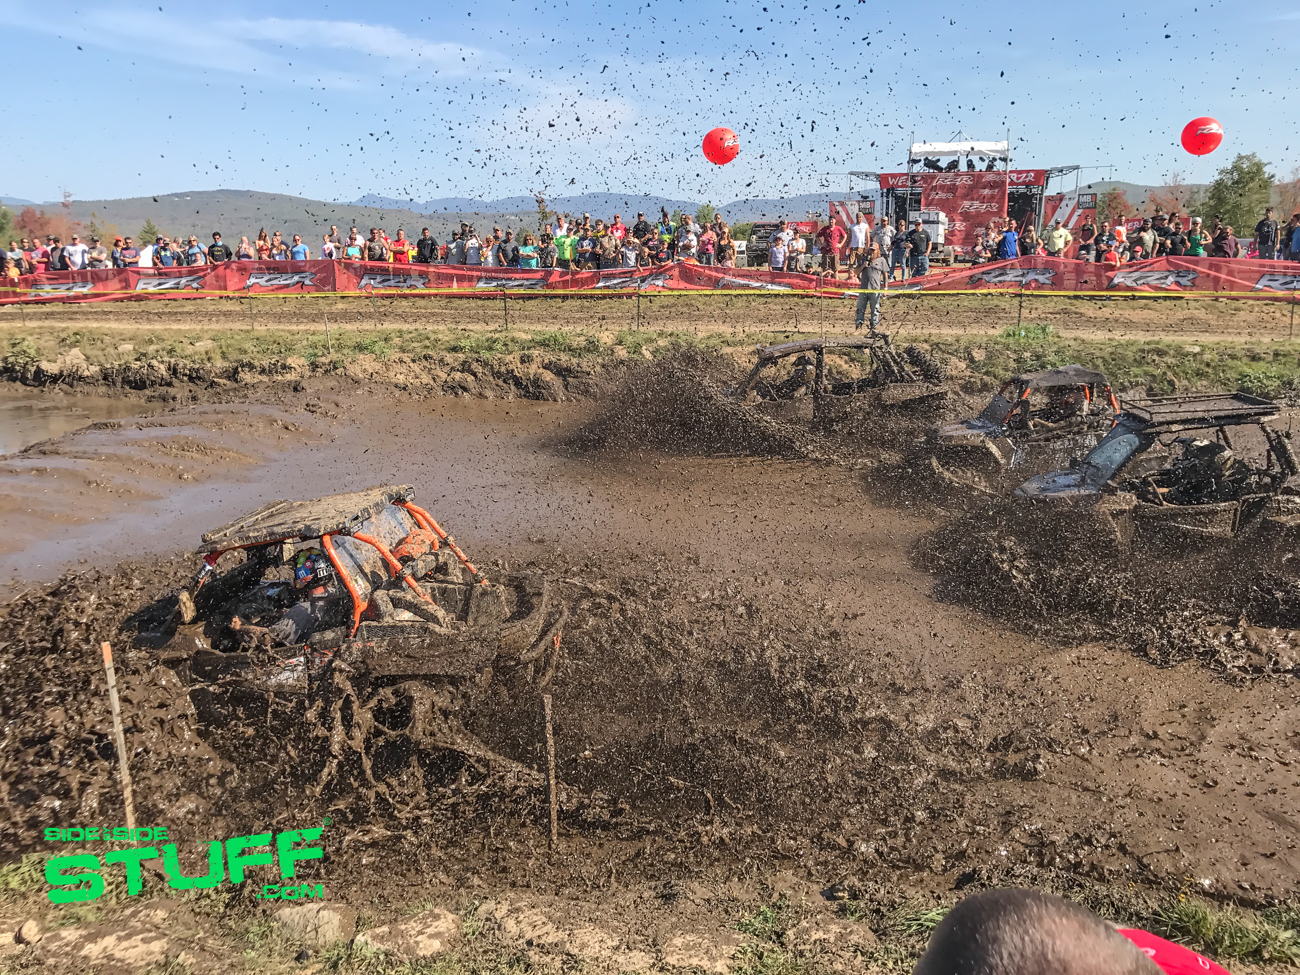 High Lifter Mud Grudge